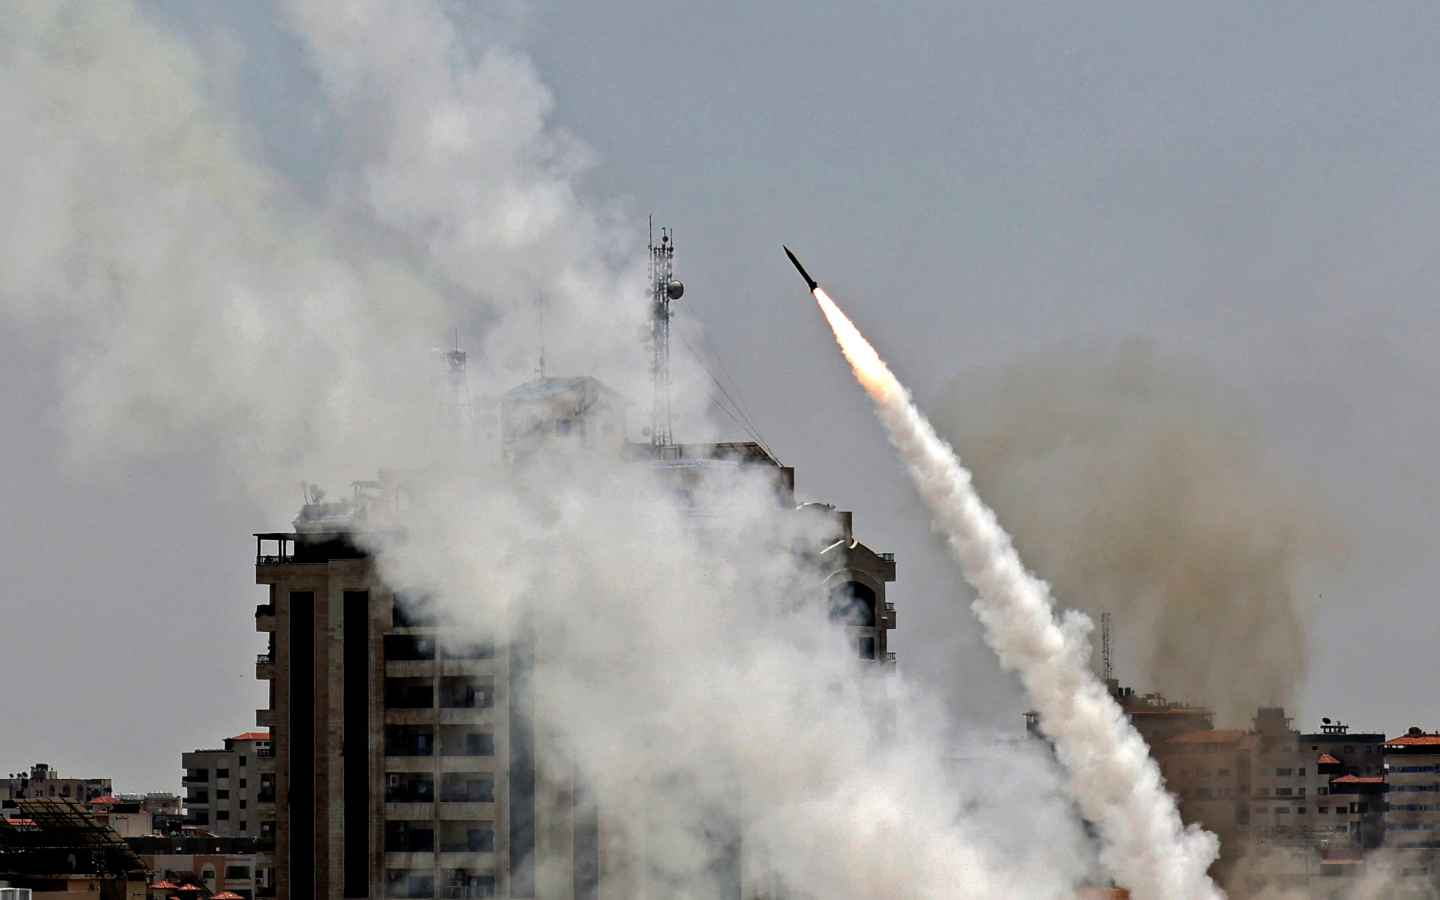 Rockets are fired from Gaza City, controlled by the Palestinian Hamas movement, towards Israel on May 11, 2021.